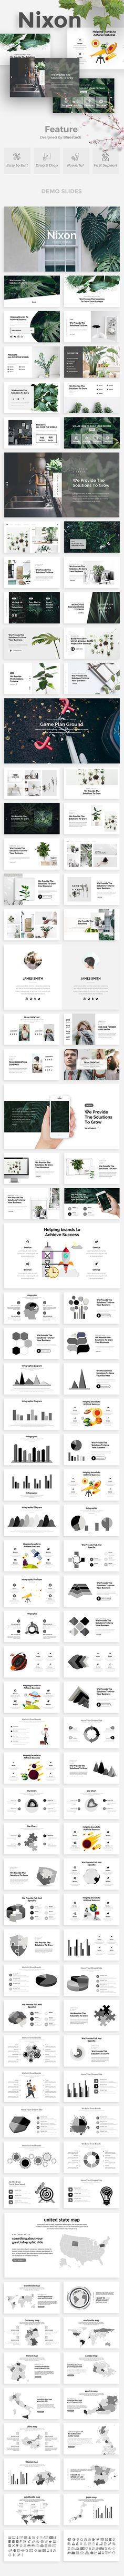 Buy Nixon Creative Powerpoint Template by bluestack on GraphicRiver. Features: Aspect Ratio no more broken images! Easy and fully editable in PowerPoint (shape color, size, position. Powerpoint Tips, Creative Powerpoint Templates, Presentation Layout, Presentation Templates, Slide Template, Creative Visualization, Book Layout, Web Design Inspiration, Keynote Template